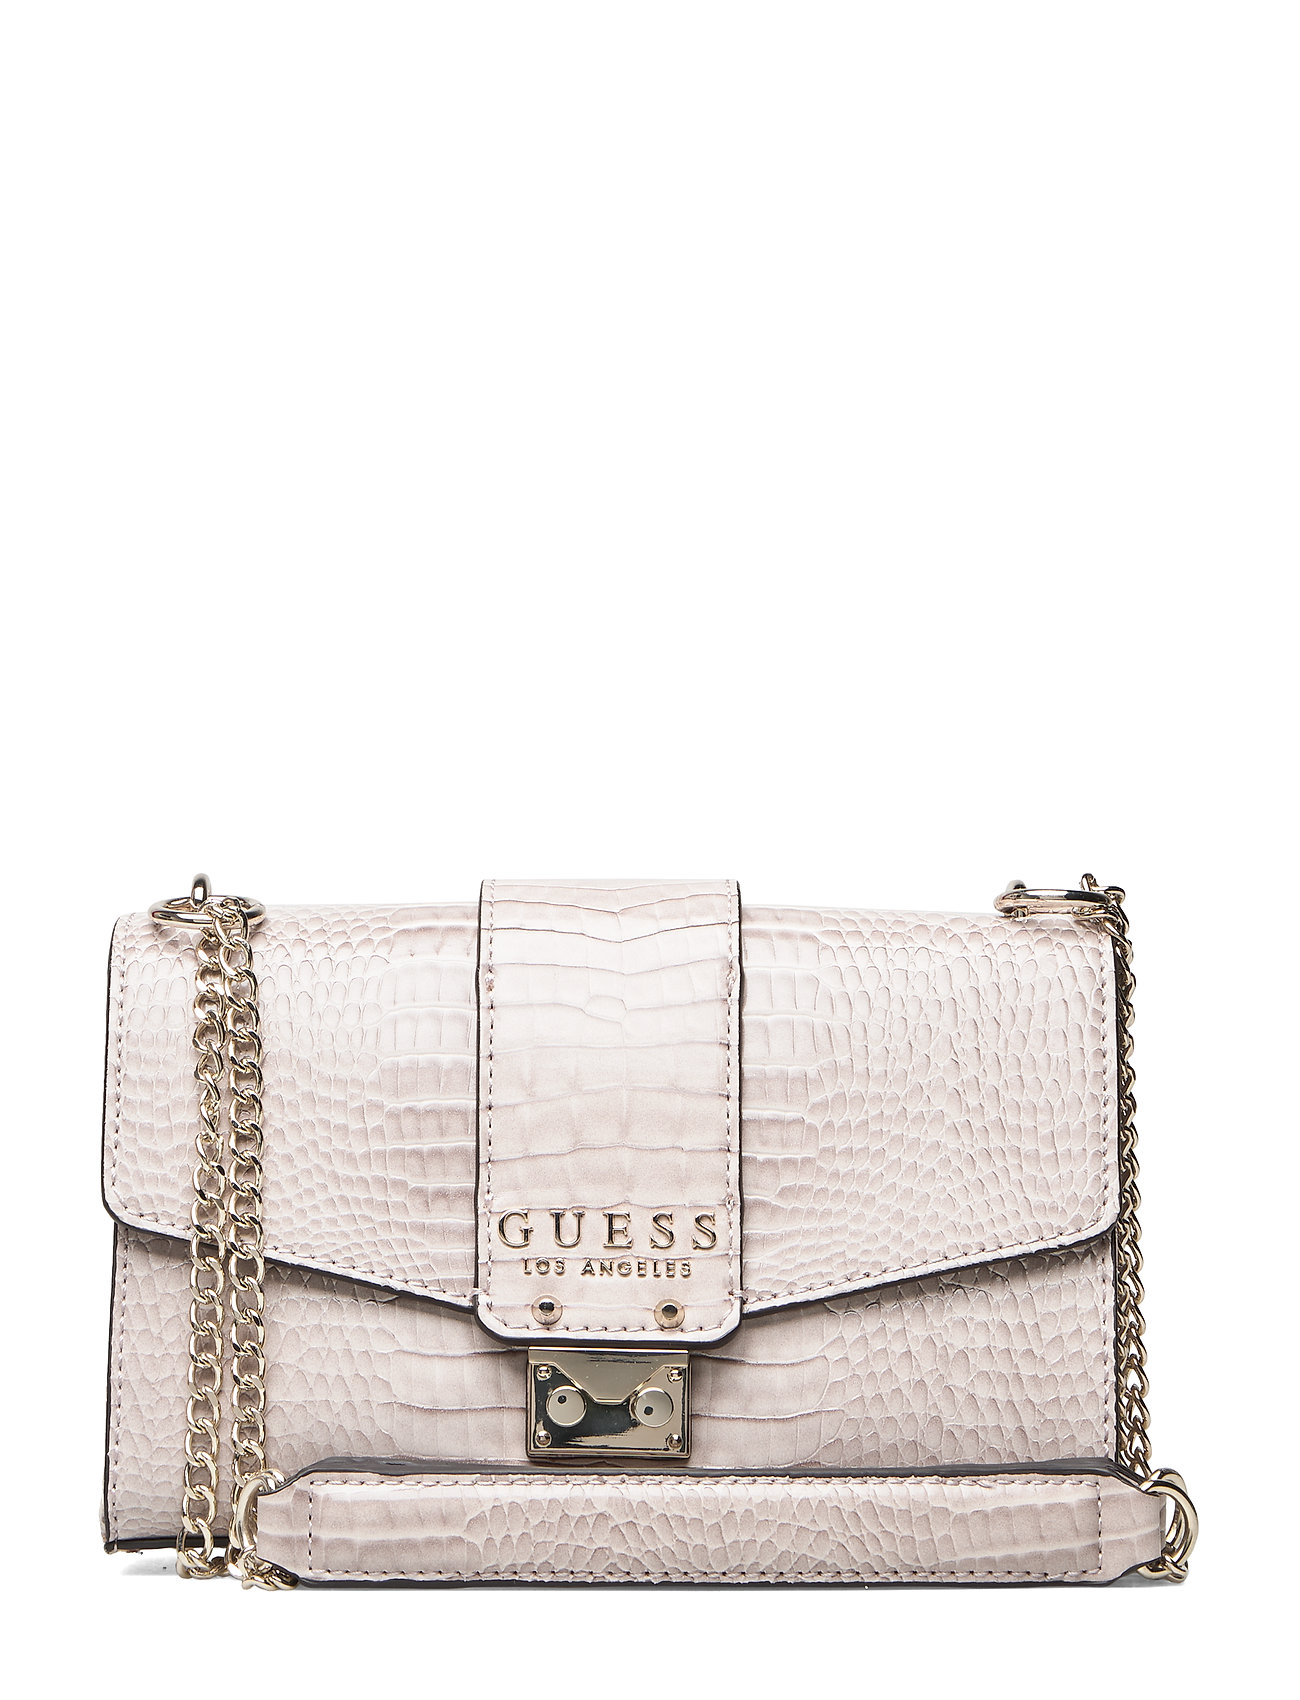 GUESS Cleo Convertible Xbody Flap Bags Small Shoulder Bags/crossbody Bags GUESS